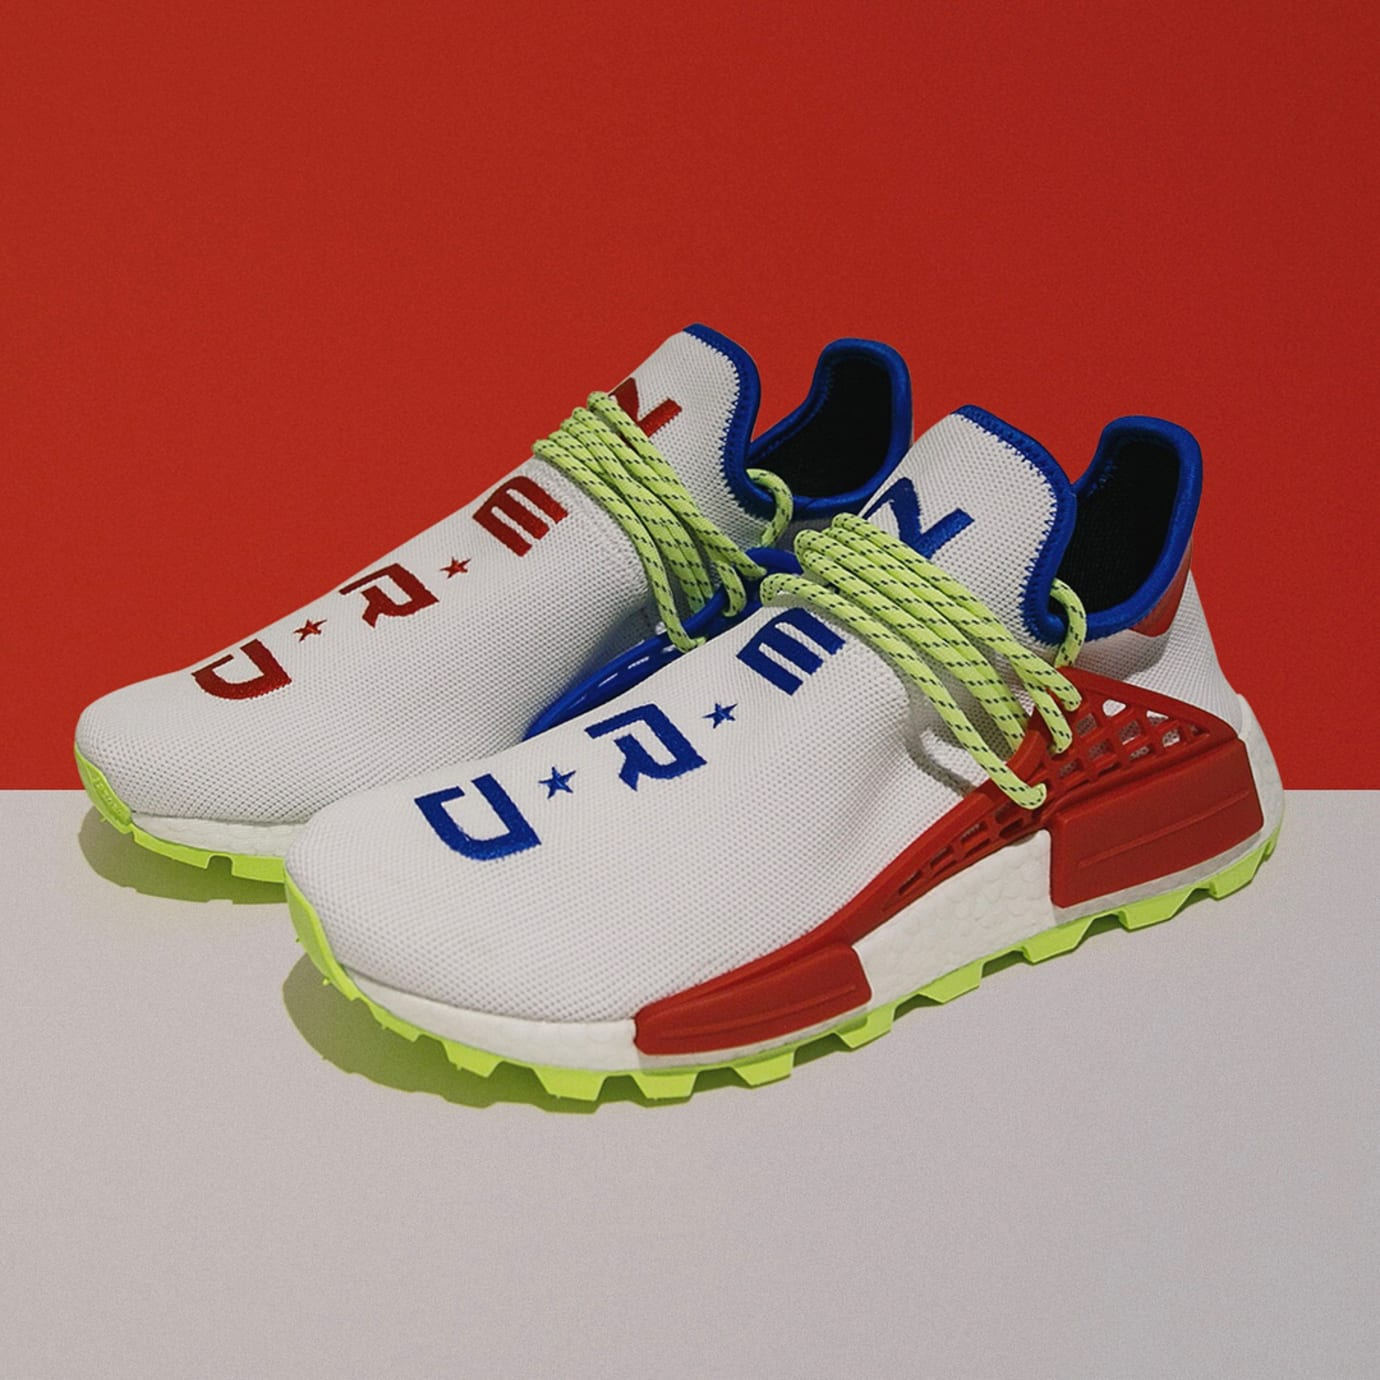 372f039e48840 Pharrell Williams x Adidas NMD Hu  N.E.R.D.  Virginia Beach ...